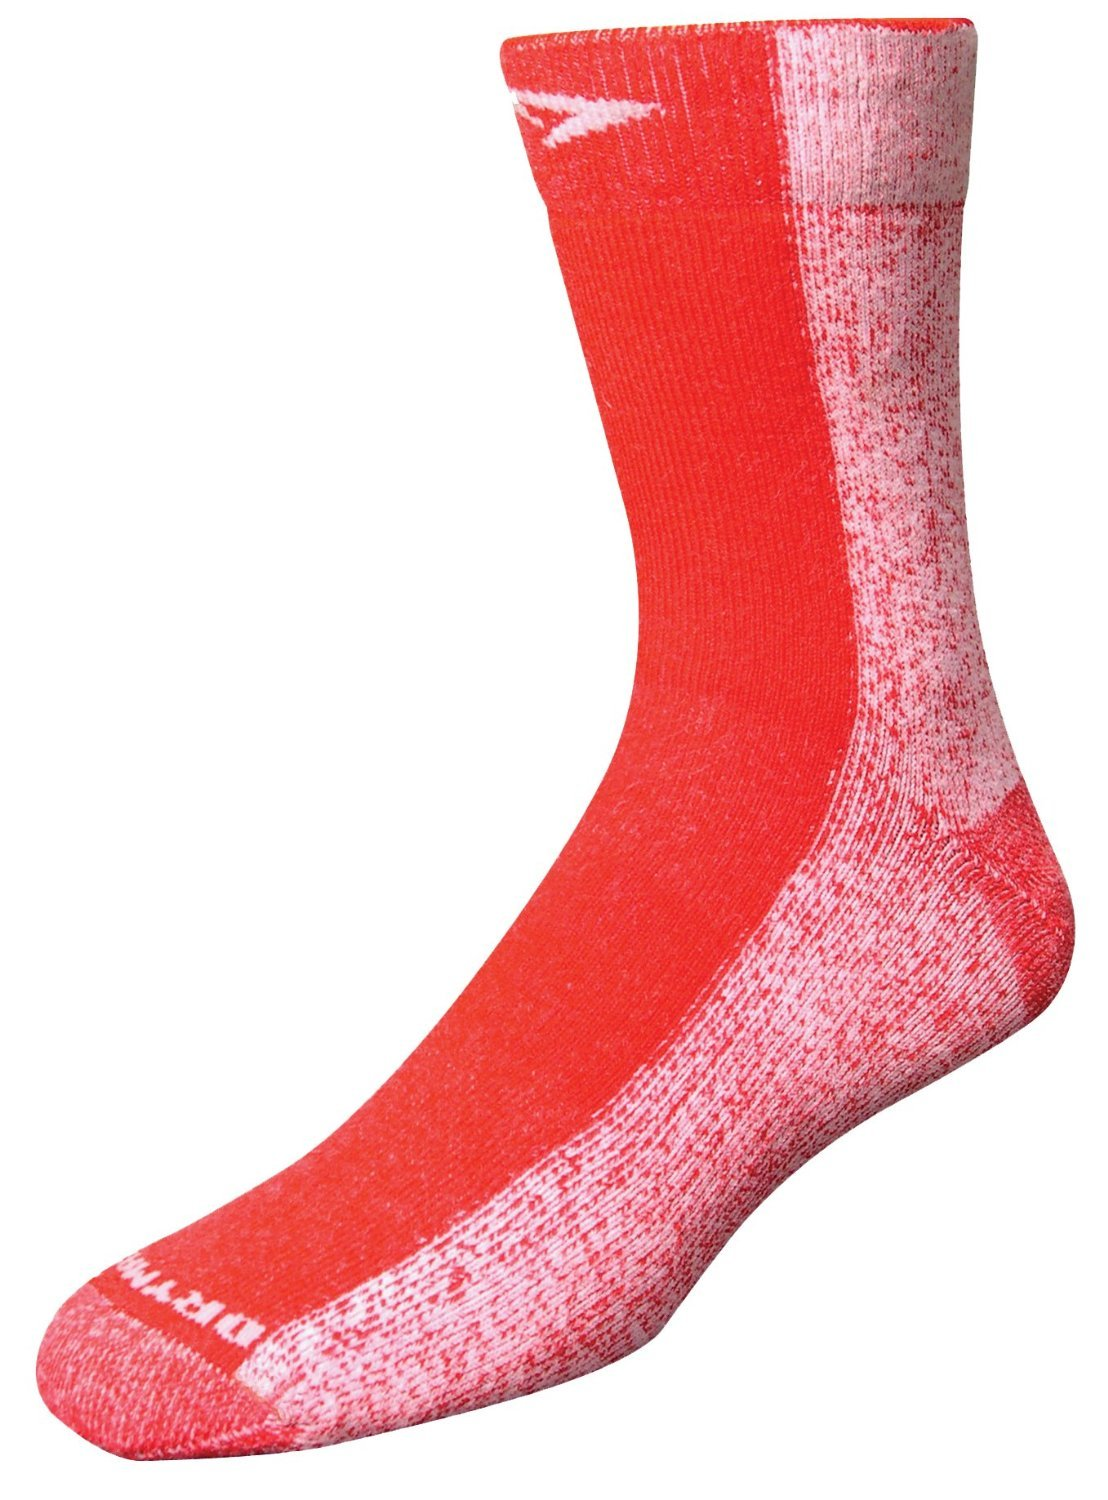 Cold Weather Running Socks